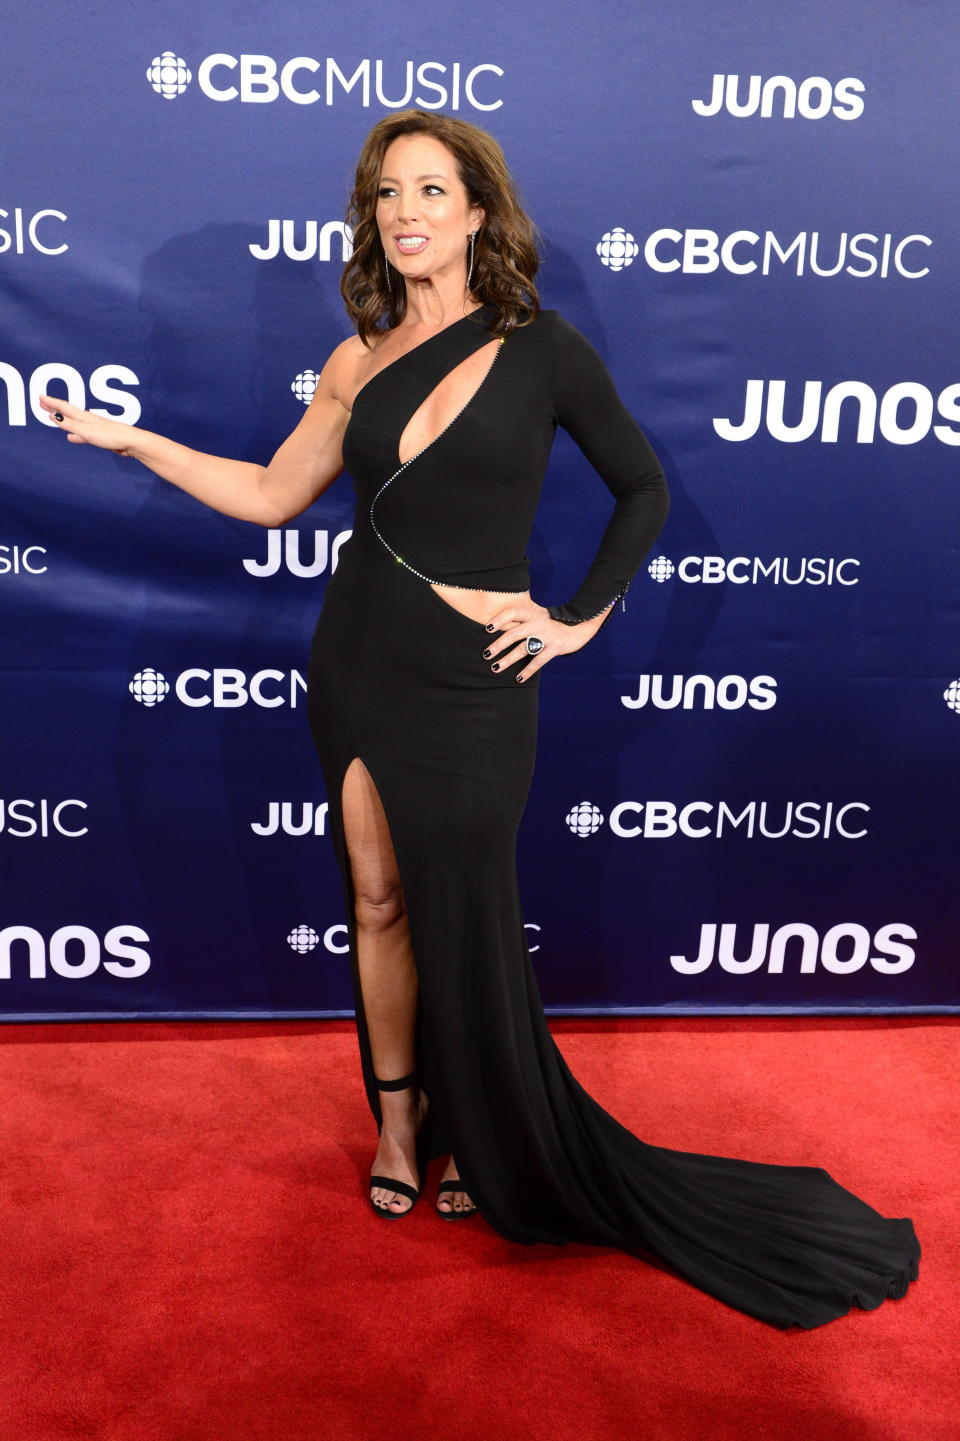 <p>The Junos host stunned in a cutout gown with a thigh-high slit and sequined detailing. </p>